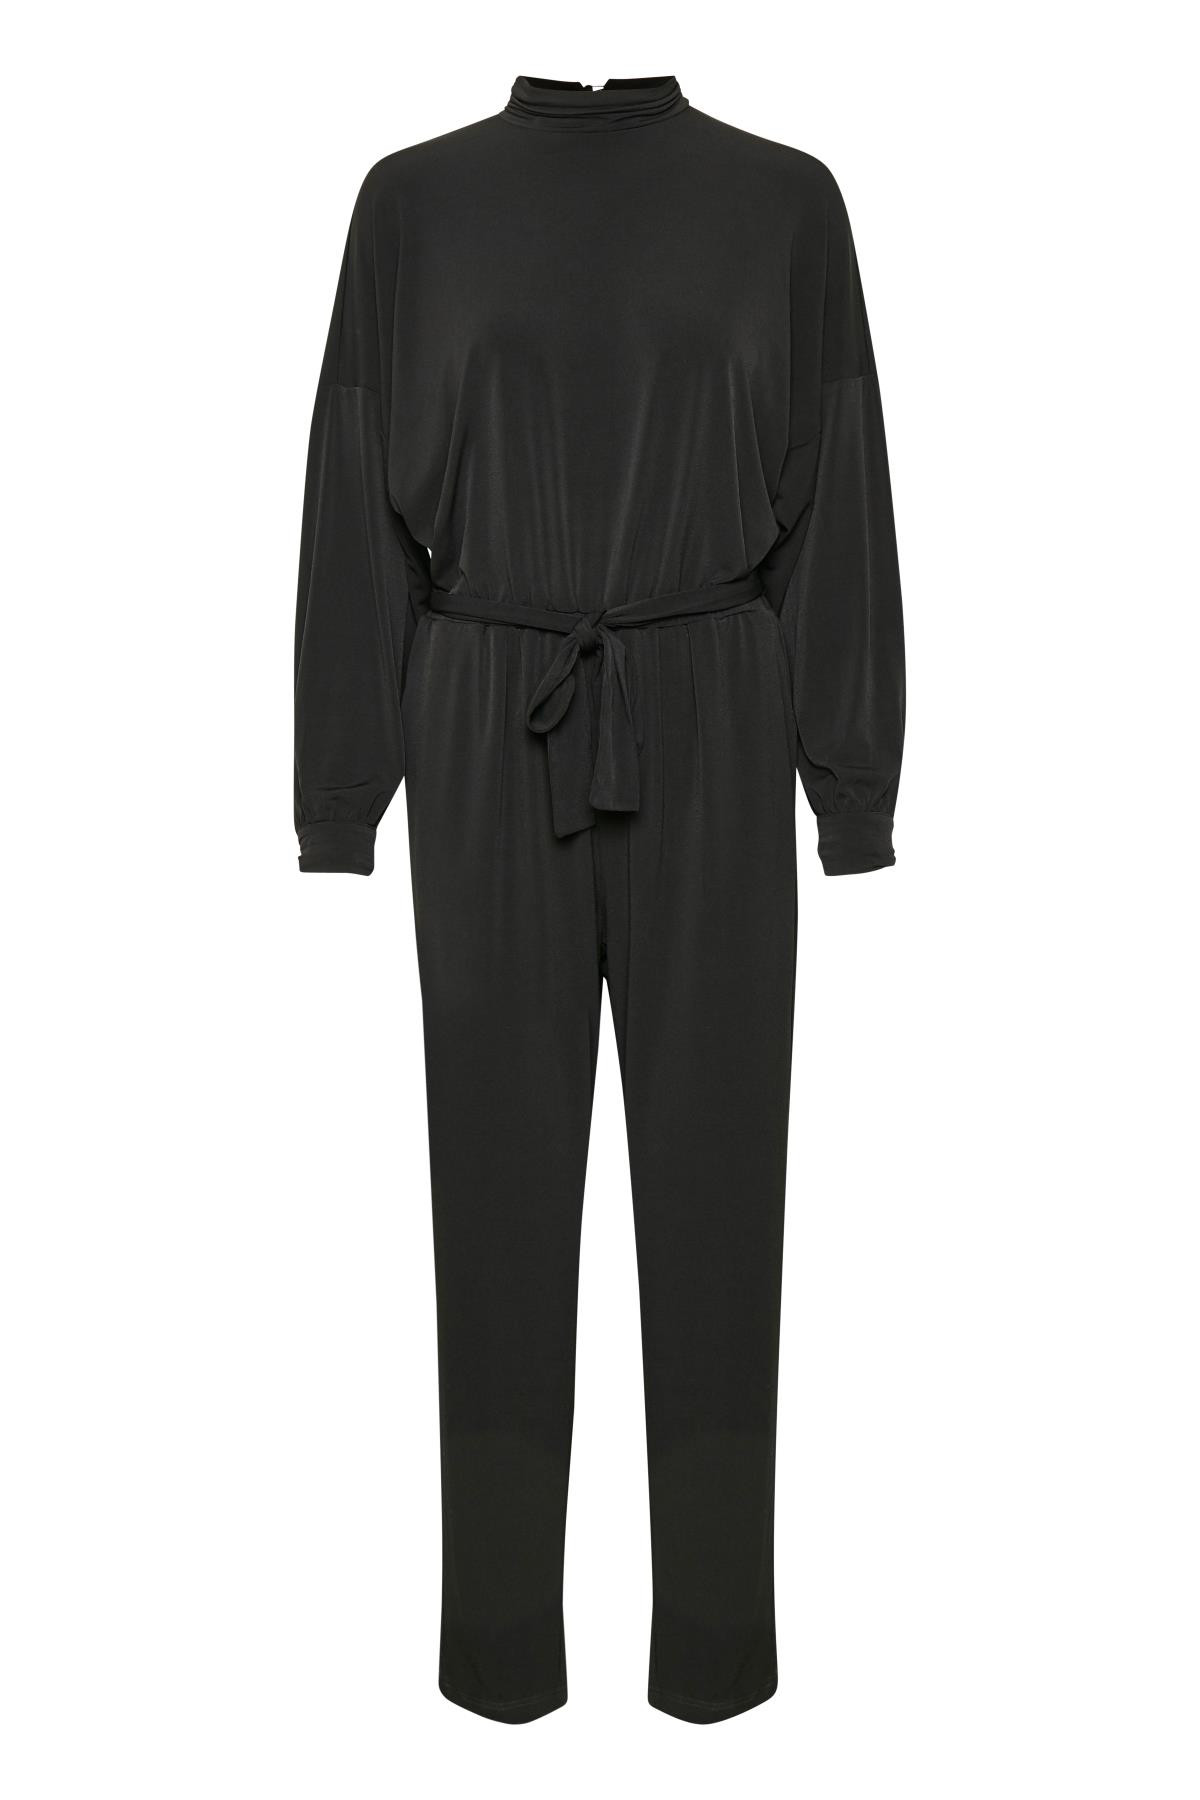 Image of   GESTUZ SANTE JUMPSUIT (Black 90001, XS)